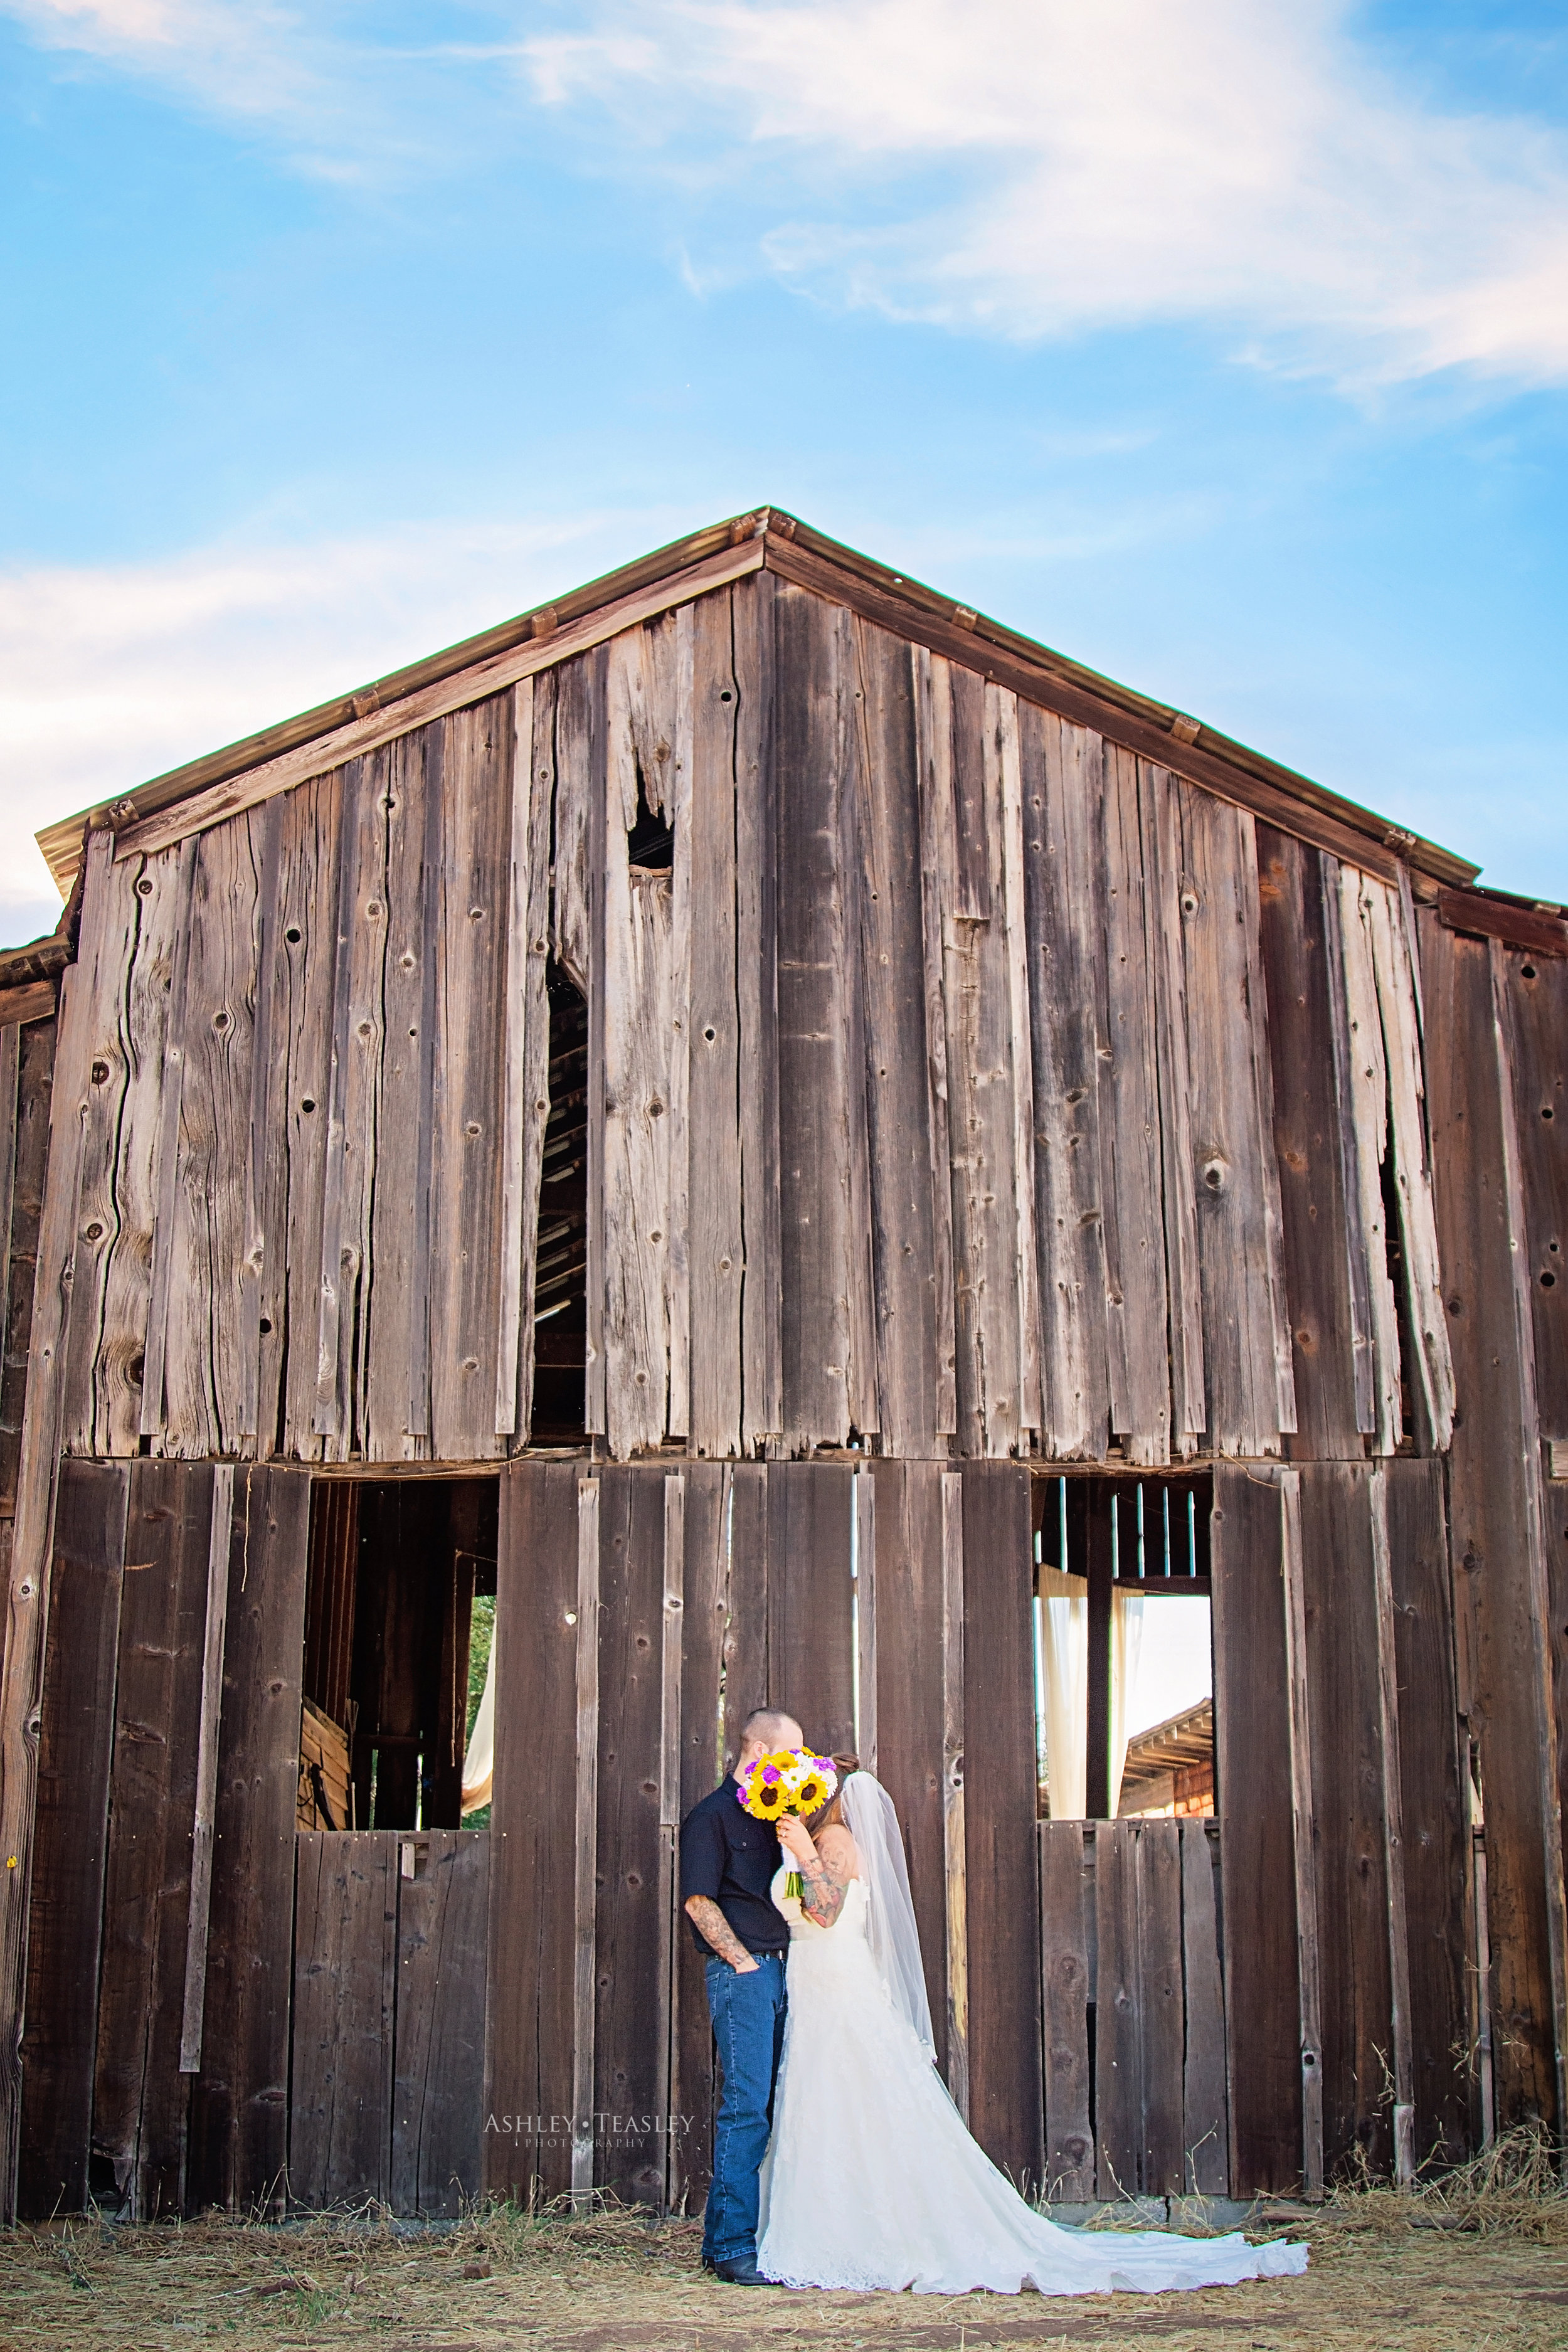 Sacramento Wedding Photographer |Stone Barn Ranch | Sheridan, CA | Ashley Teasley Photography